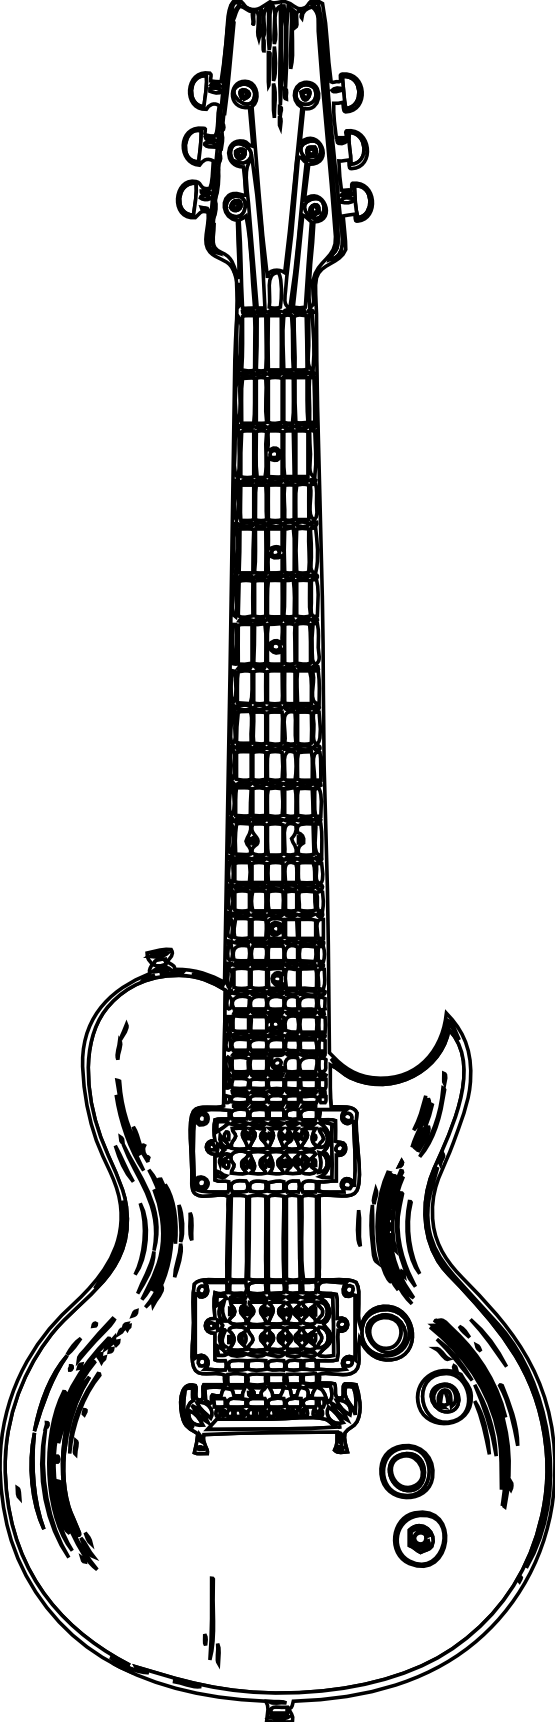 Guitar black and white png. Free pictures of guitars